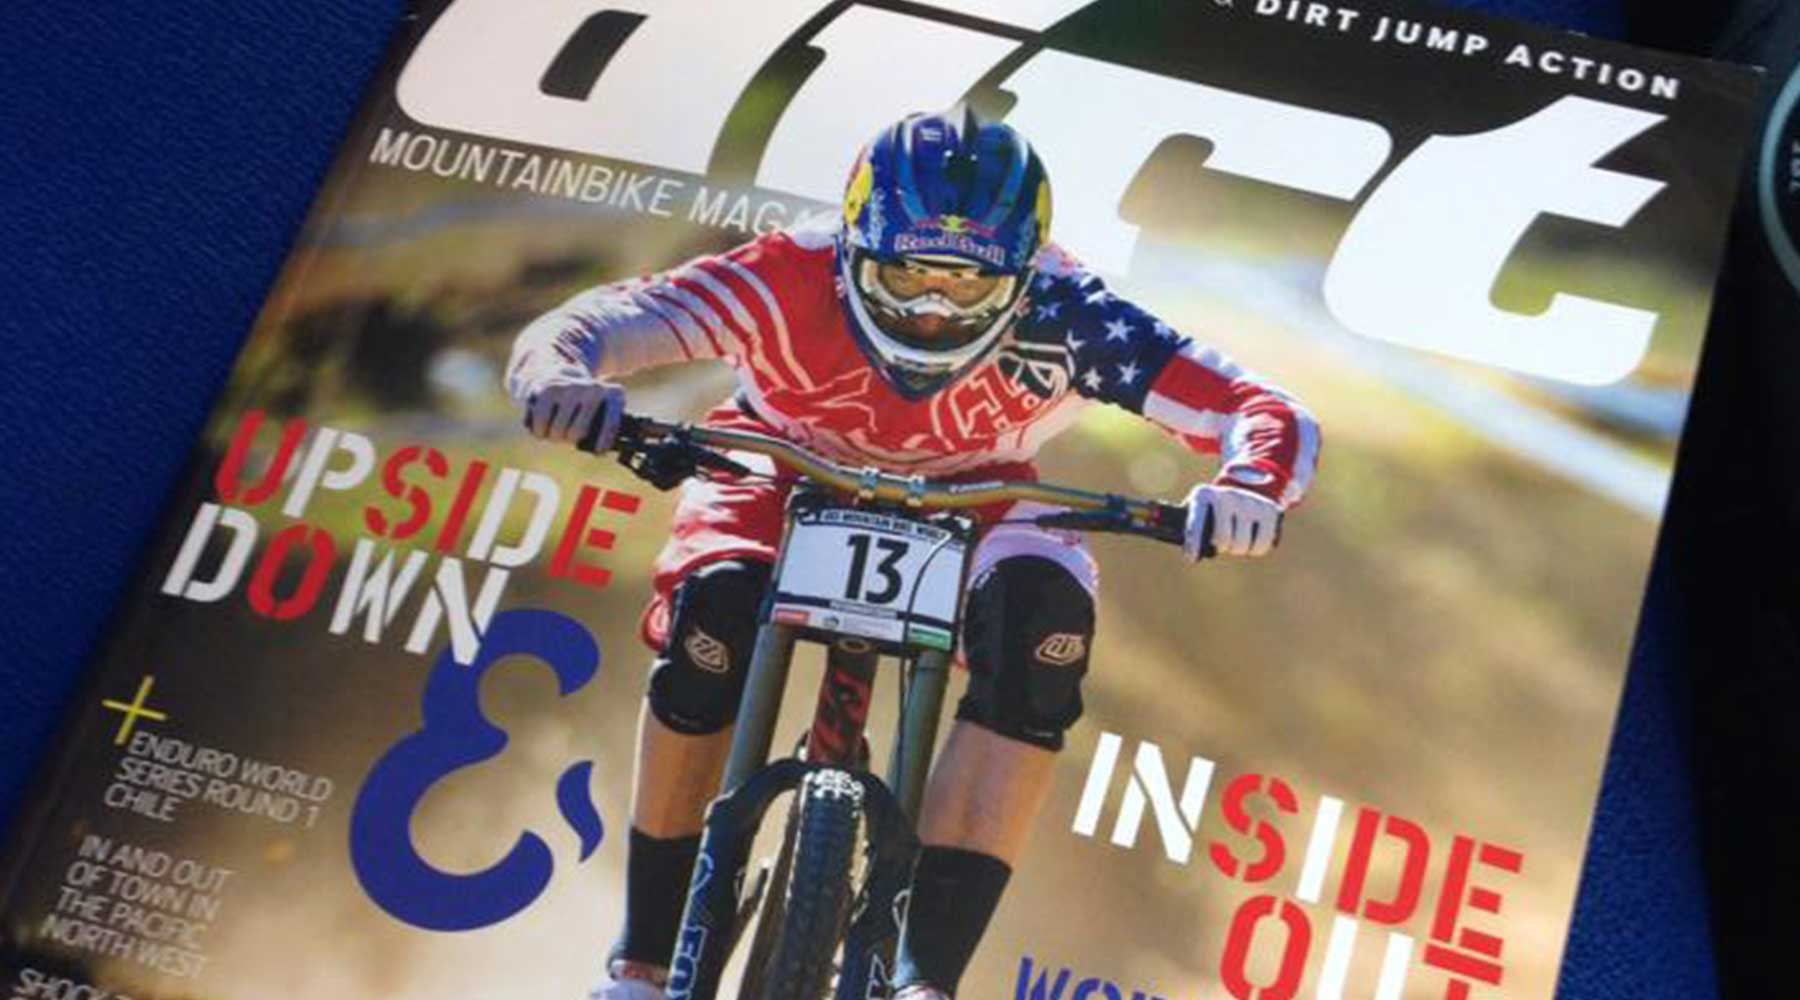 DIRT MAGAZINE from the Cairns World Cup Launch